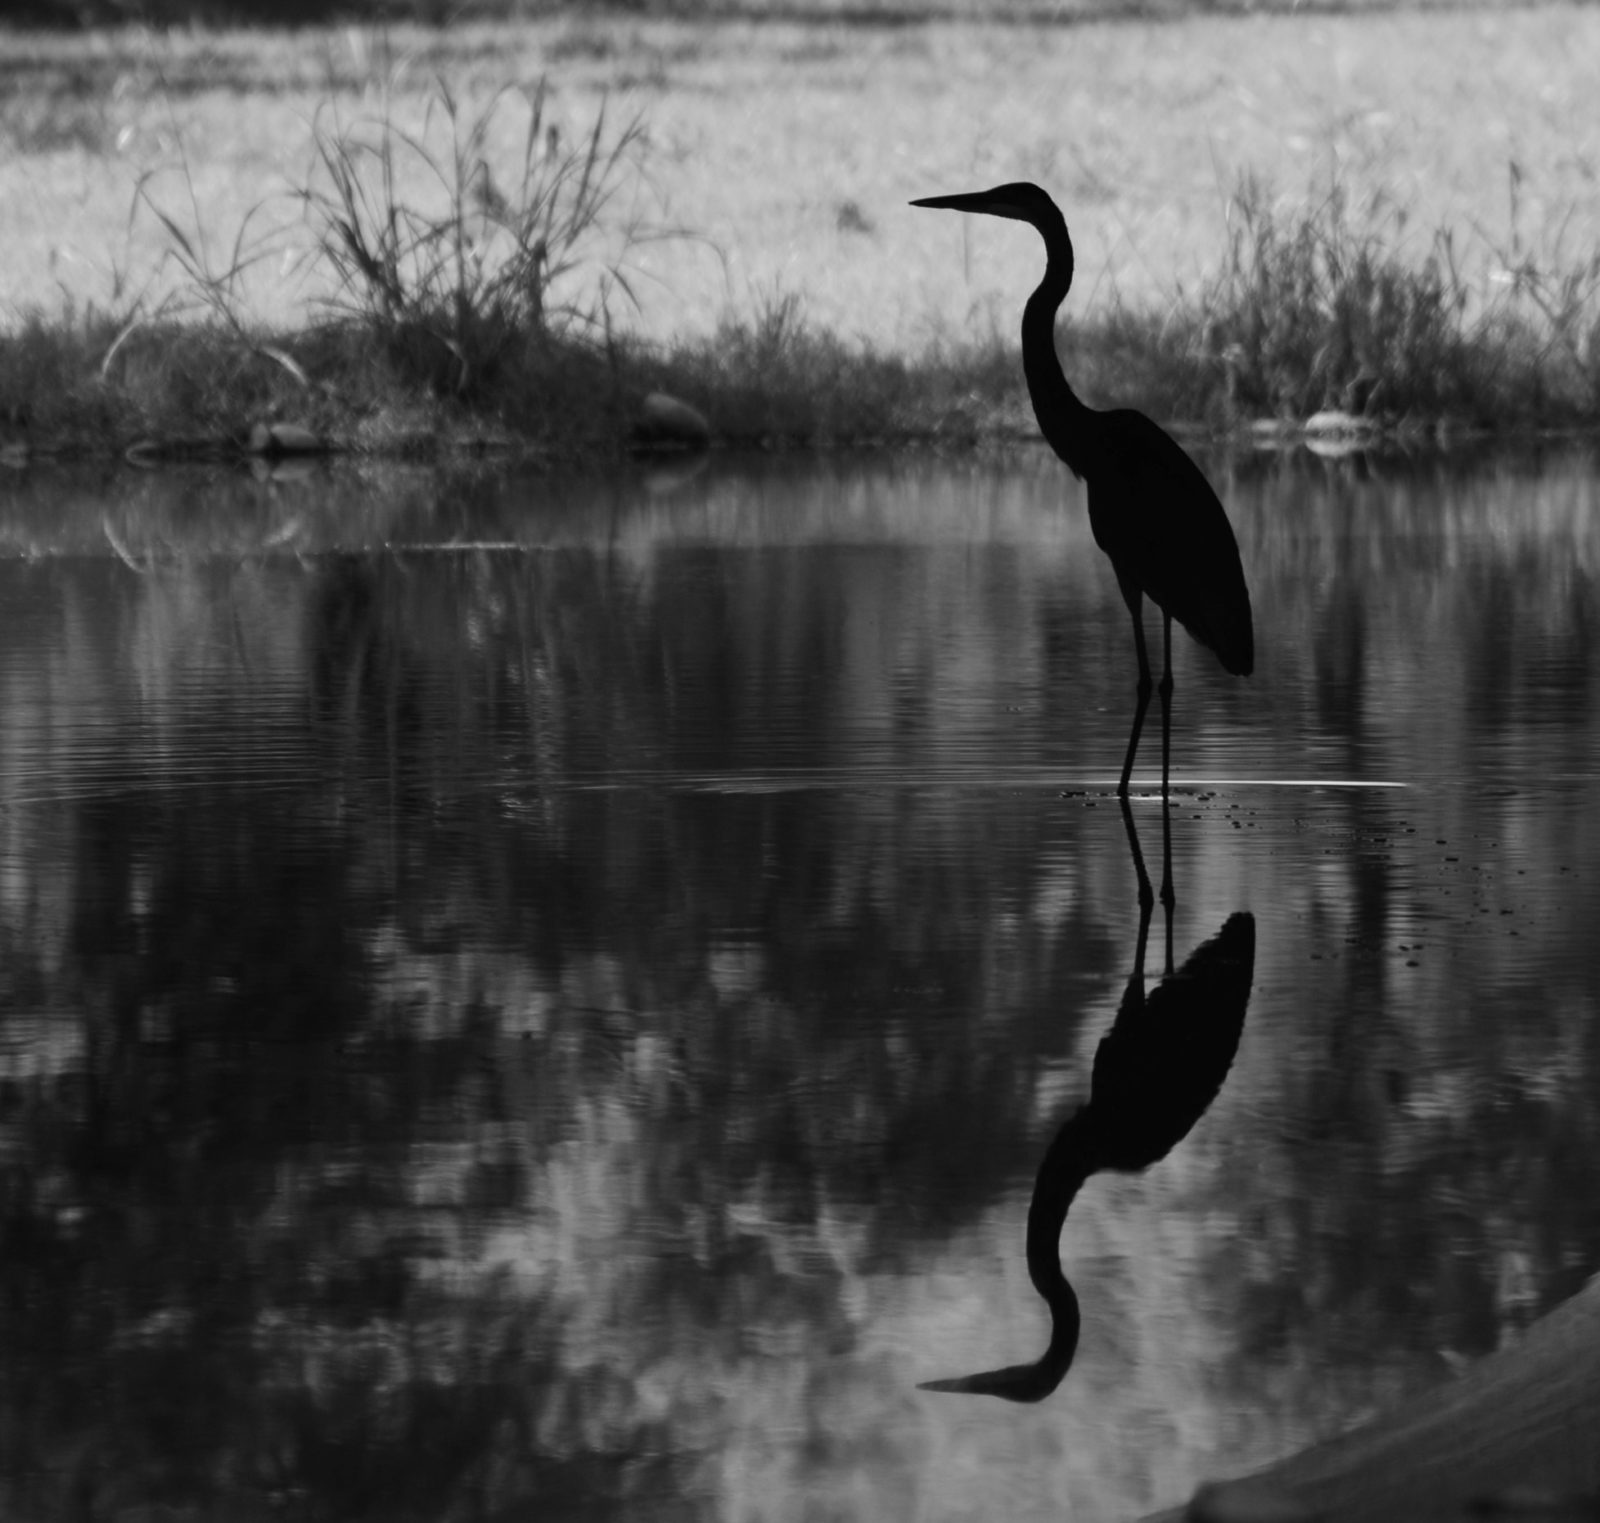 Reflection Black and White